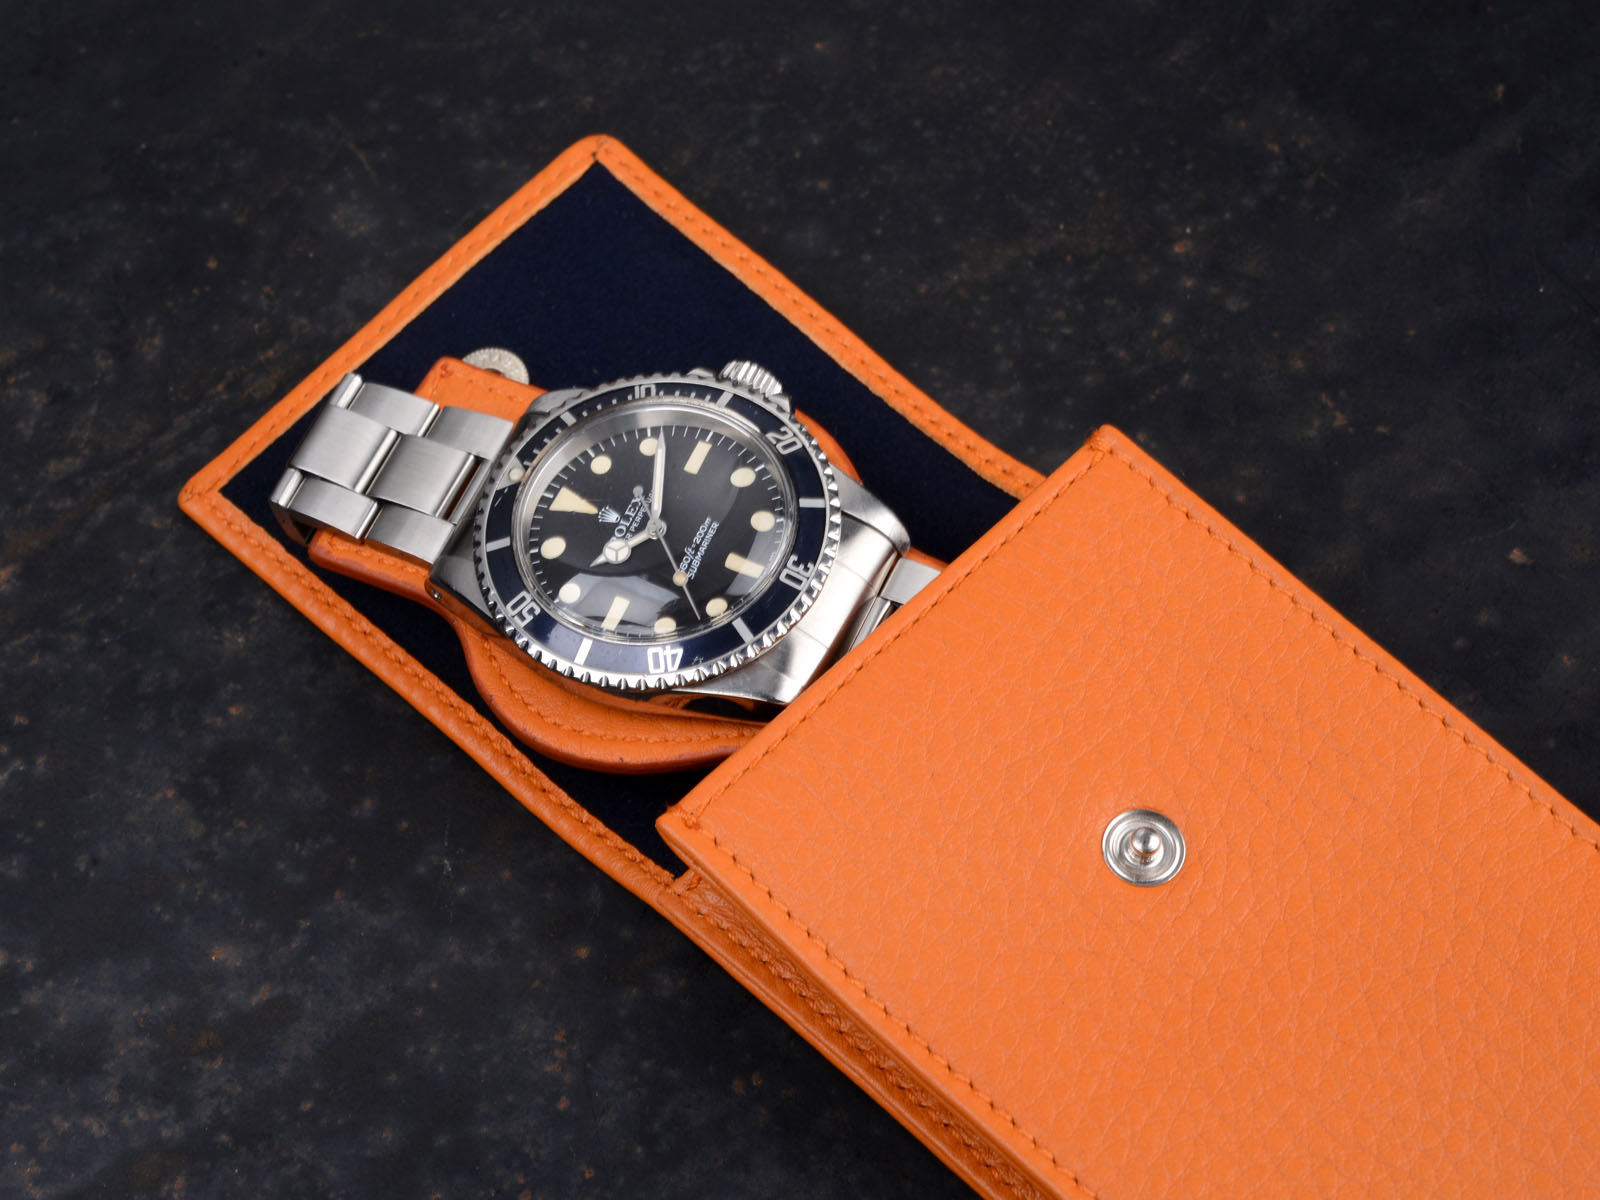 B&S 'Lusso' Orange Hand-made Watch Pouch at Bulang & Sons. Fine watches and collecting lifestyle. For Rolex, Omega, Heuer, longines, patek and other watches. Made in Italy out of finest leather by great craftsmen. Watch essentials with style.